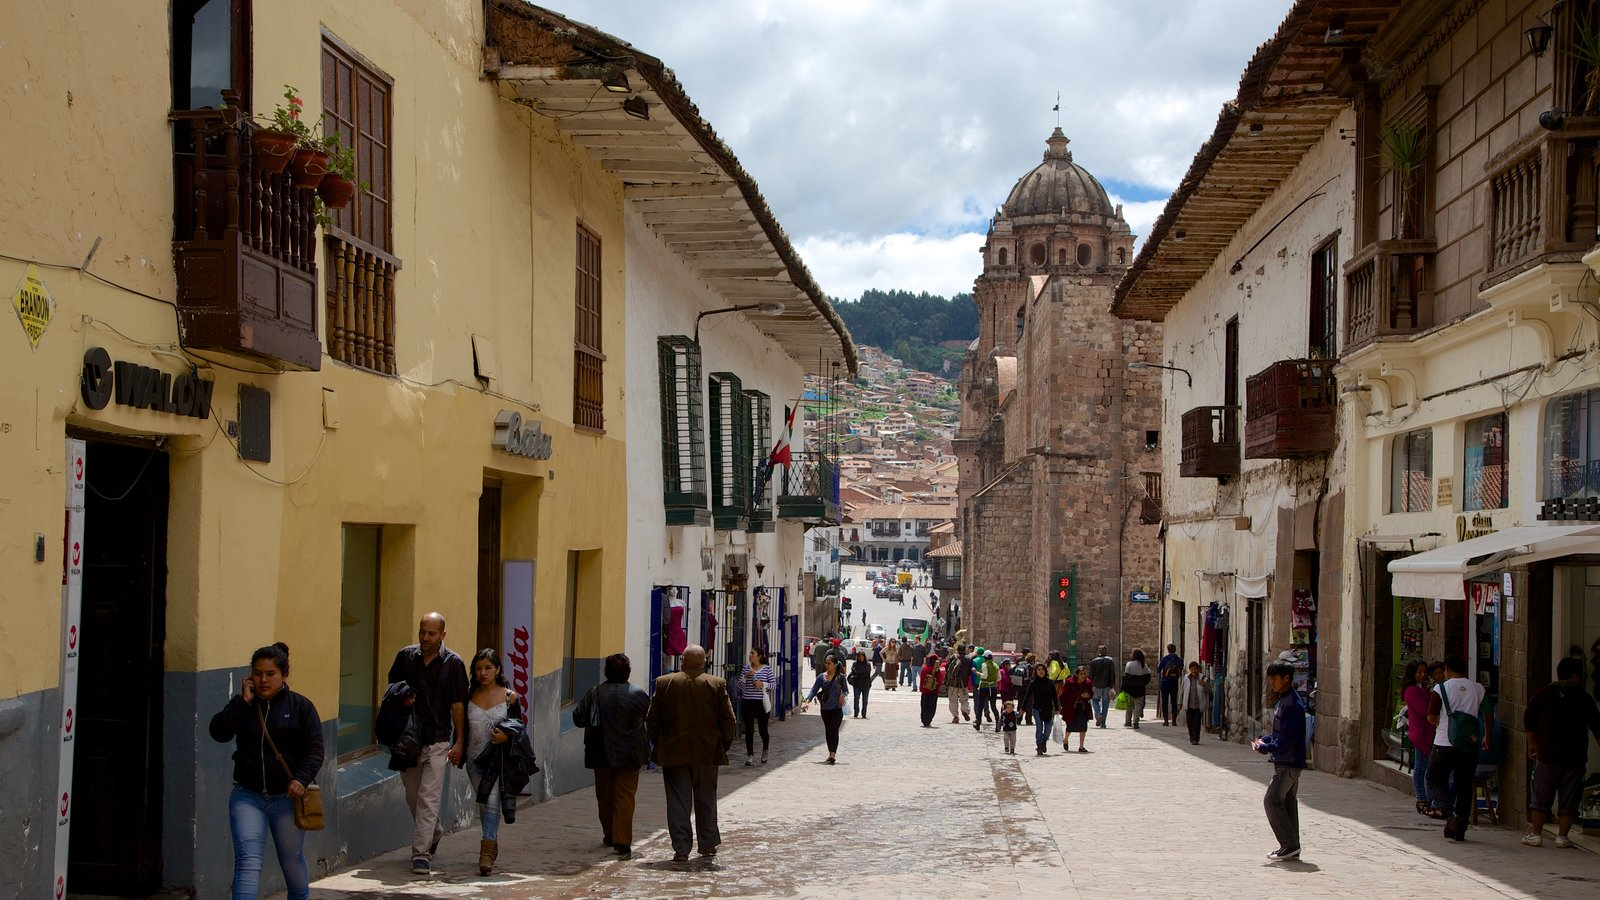 Cusco showing street scenes as well as a large group of people